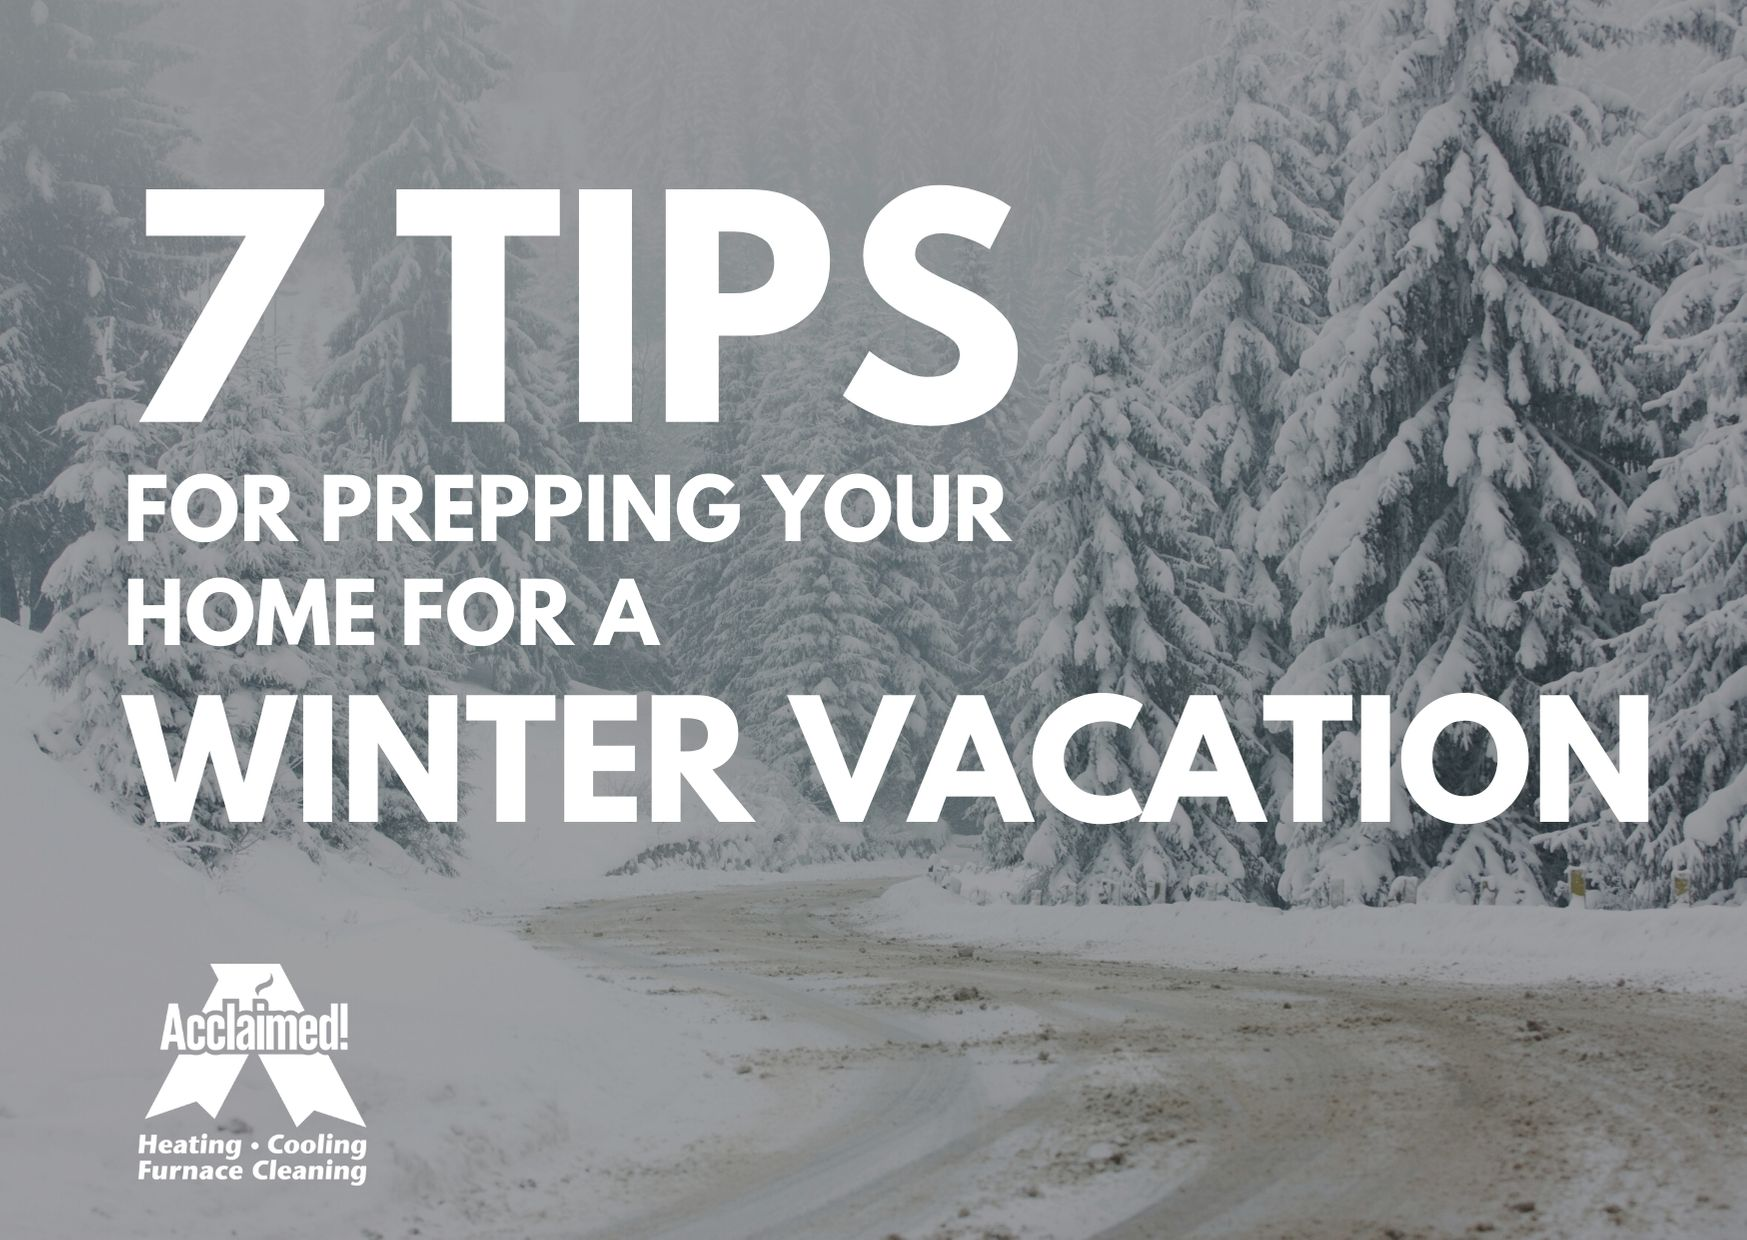 how to prep house for winter vacation